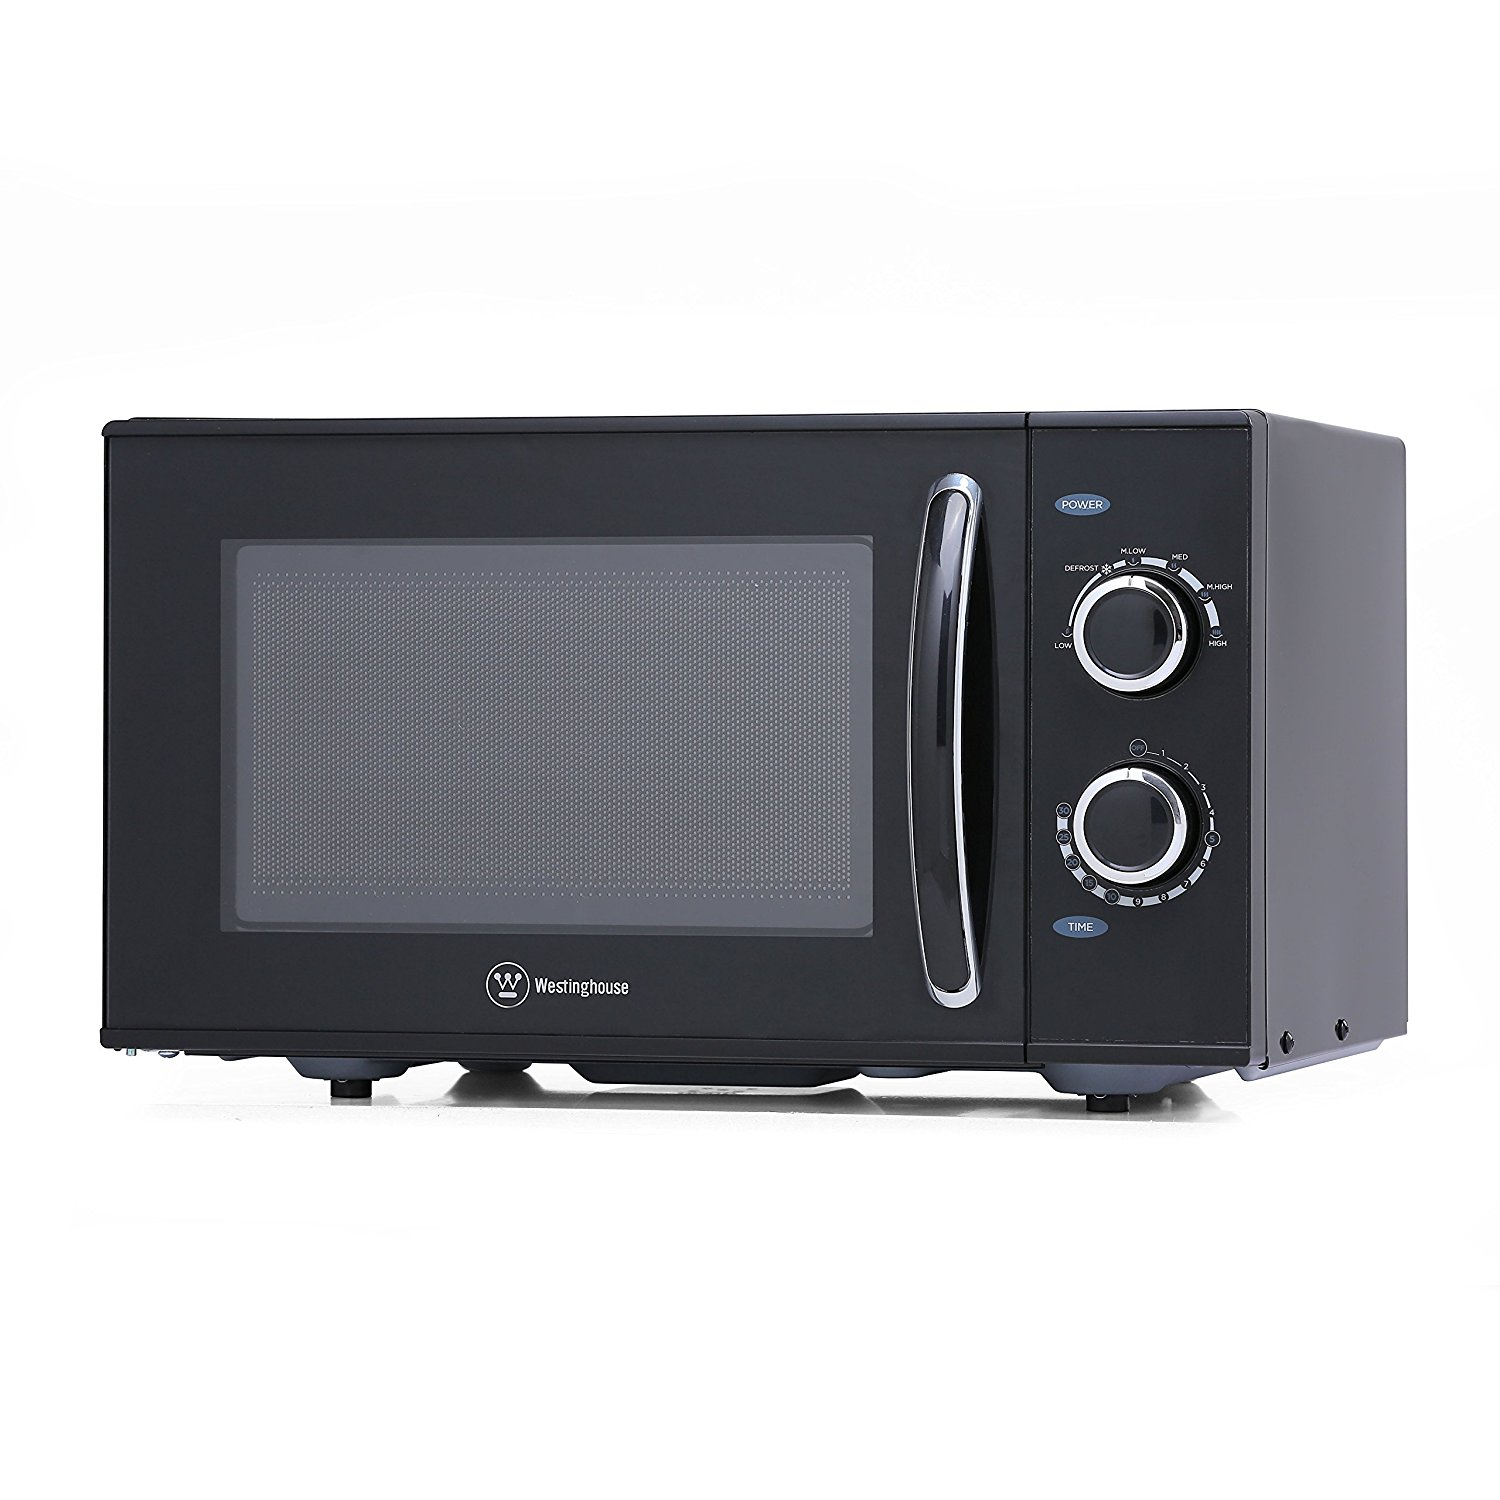 Counter Top Rotary Microwave Oven, 0.9 Cubic Feet, Black